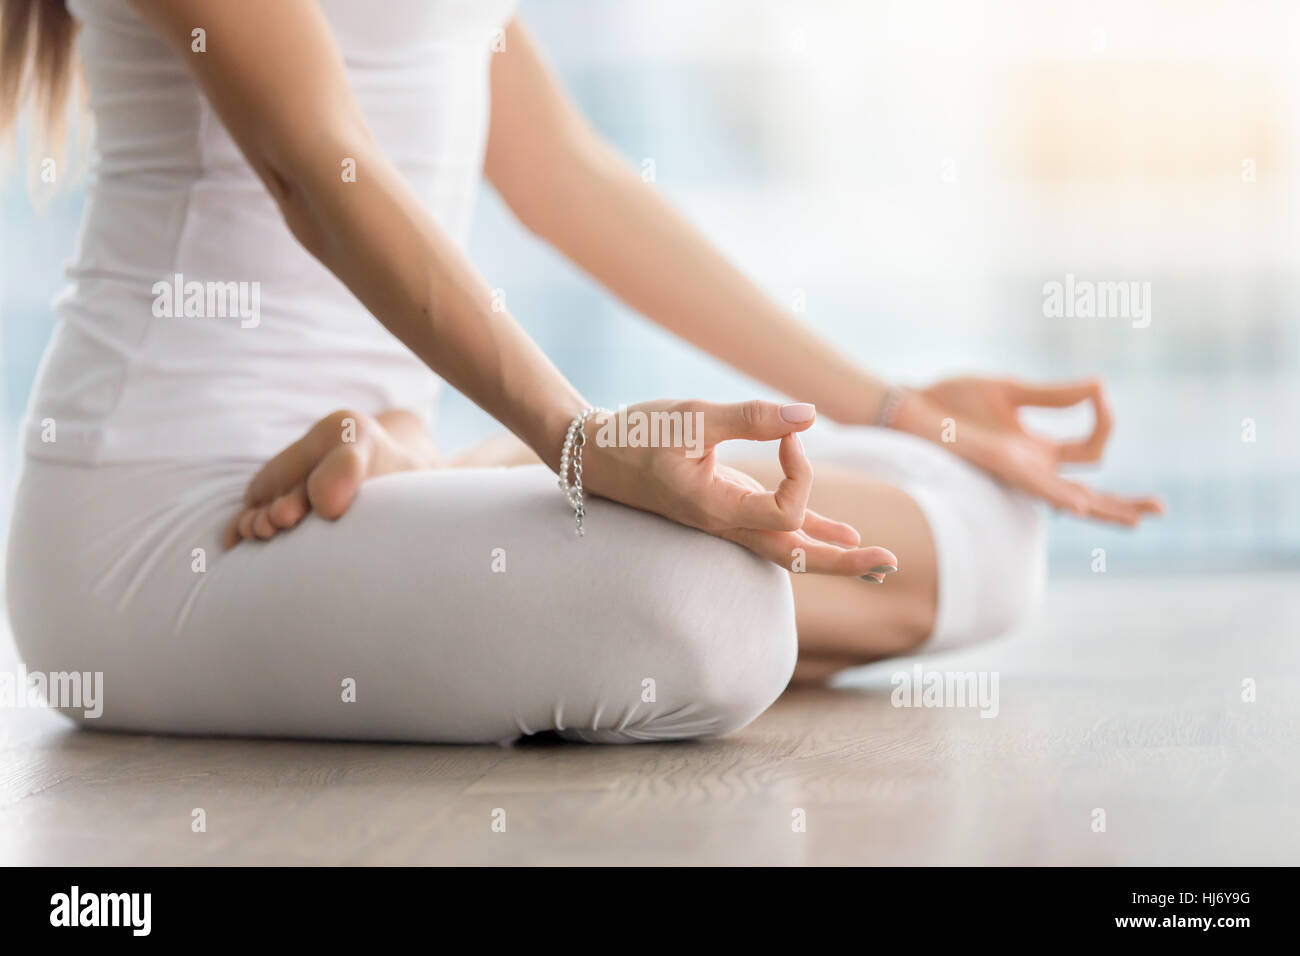 Woman in Padmasana pose with mudra against floor window, closeup - Stock Image